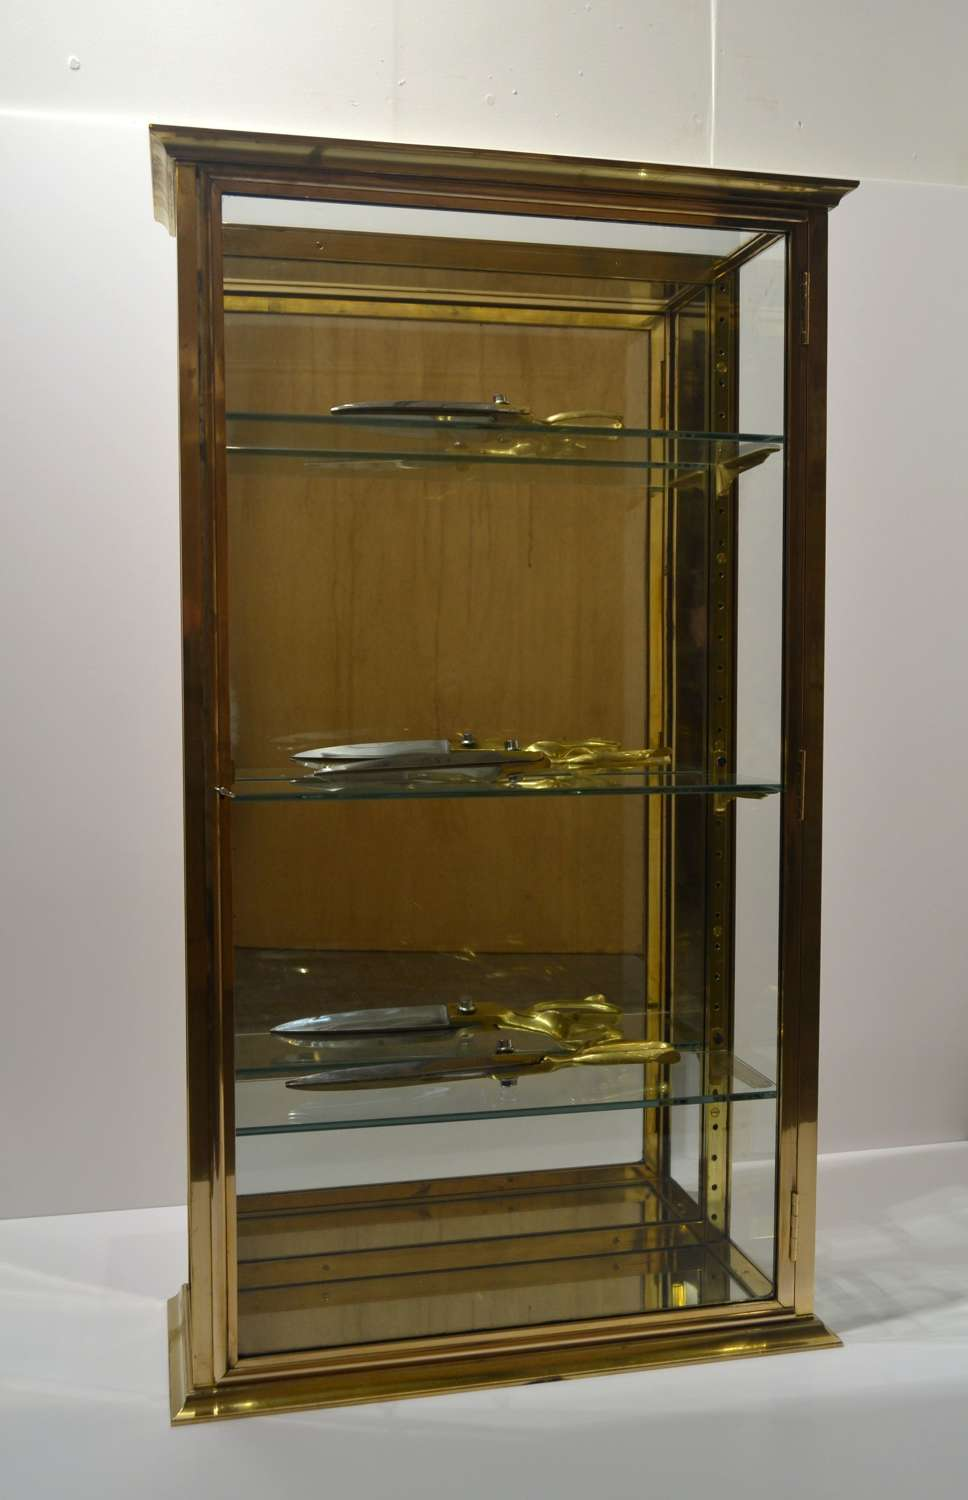 1920 Brass shop Wall display Cabinet